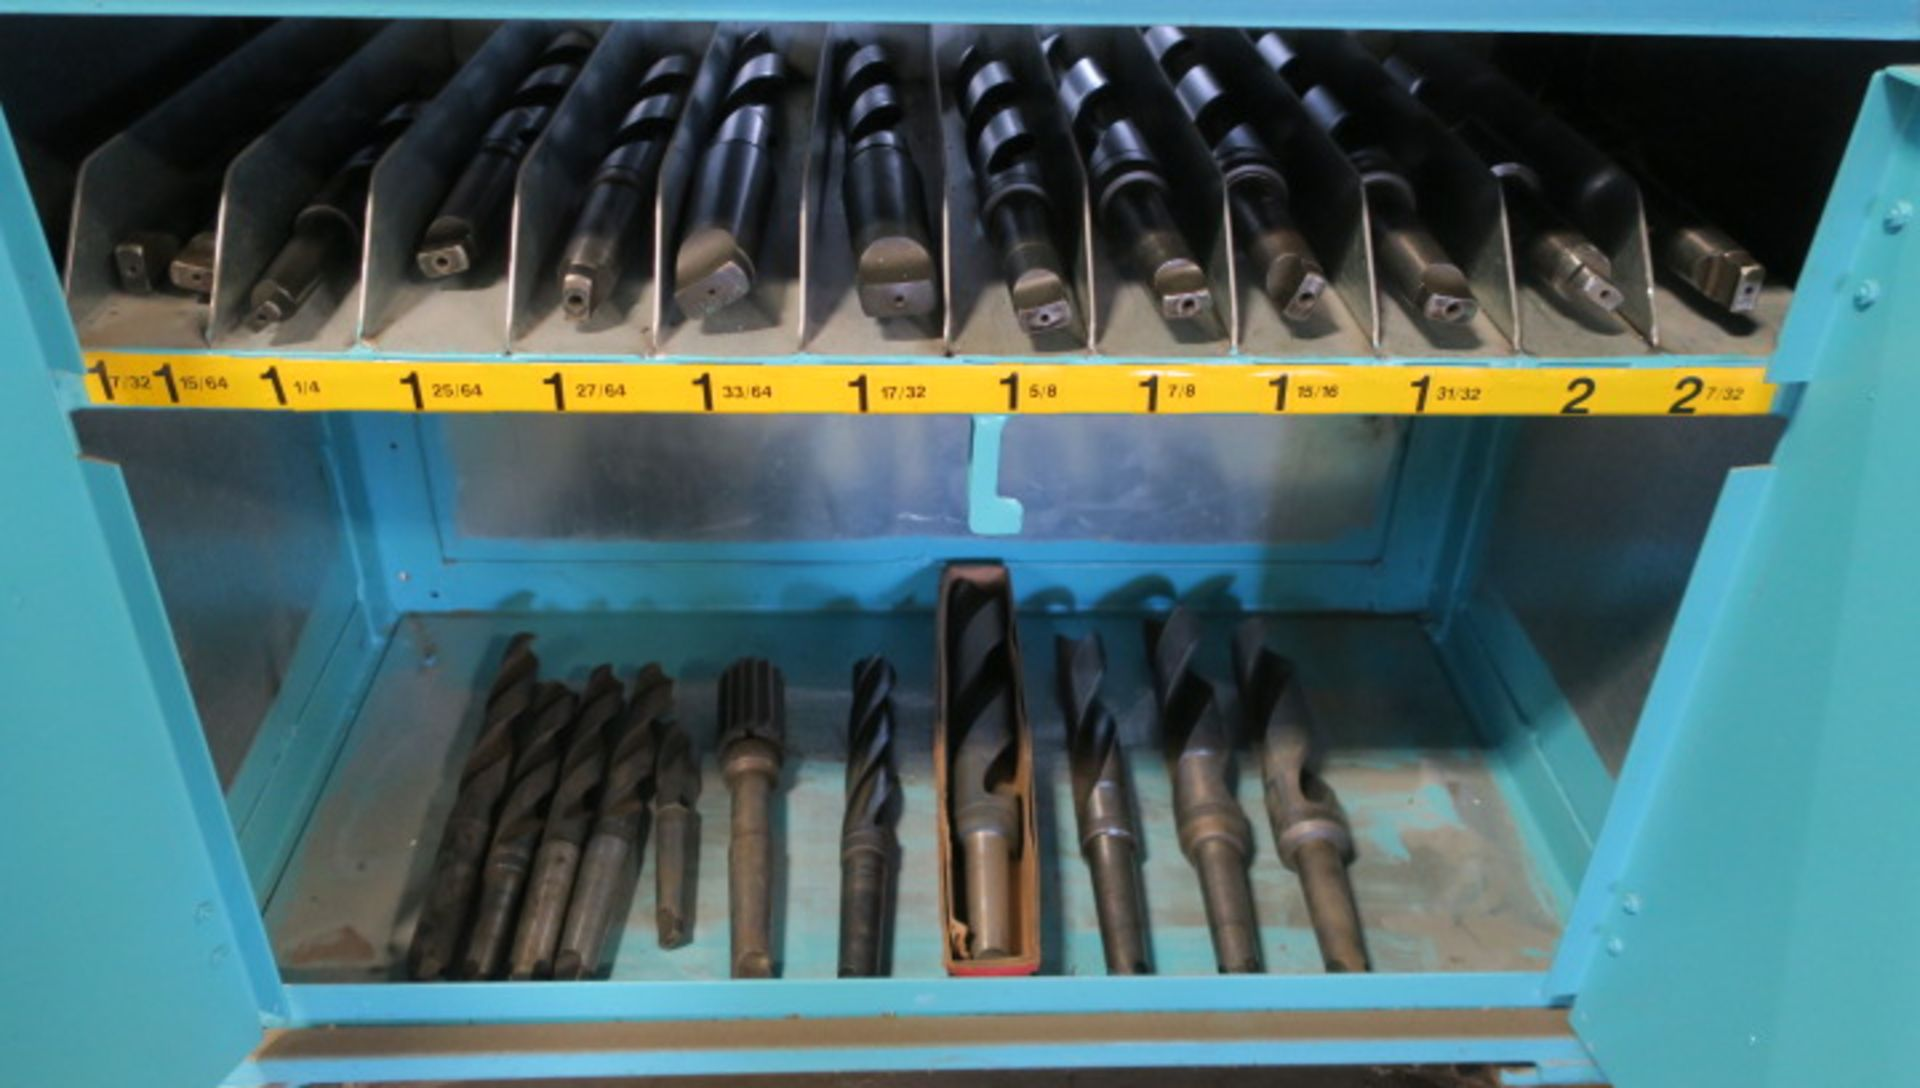 """Lot 7 - CABINET, w/large qty. of taper shank drills from 1/2"""" to 2-7/32"""" dia., in sorted trays"""